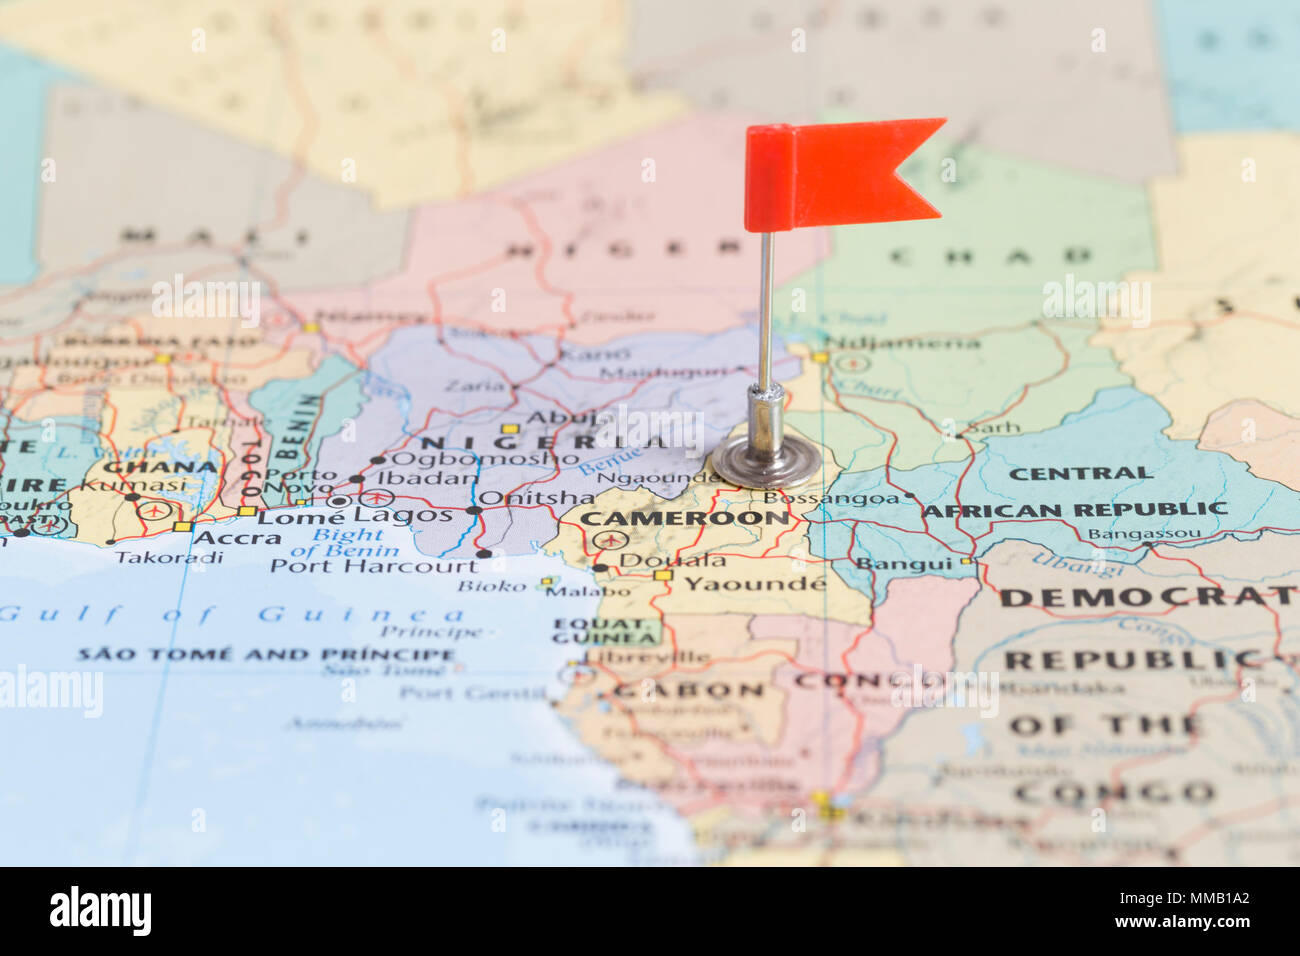 Map africa cameroon stock photos map africa cameroon stock images small red flag marking the african country of cameroon on a world map stock gumiabroncs Images